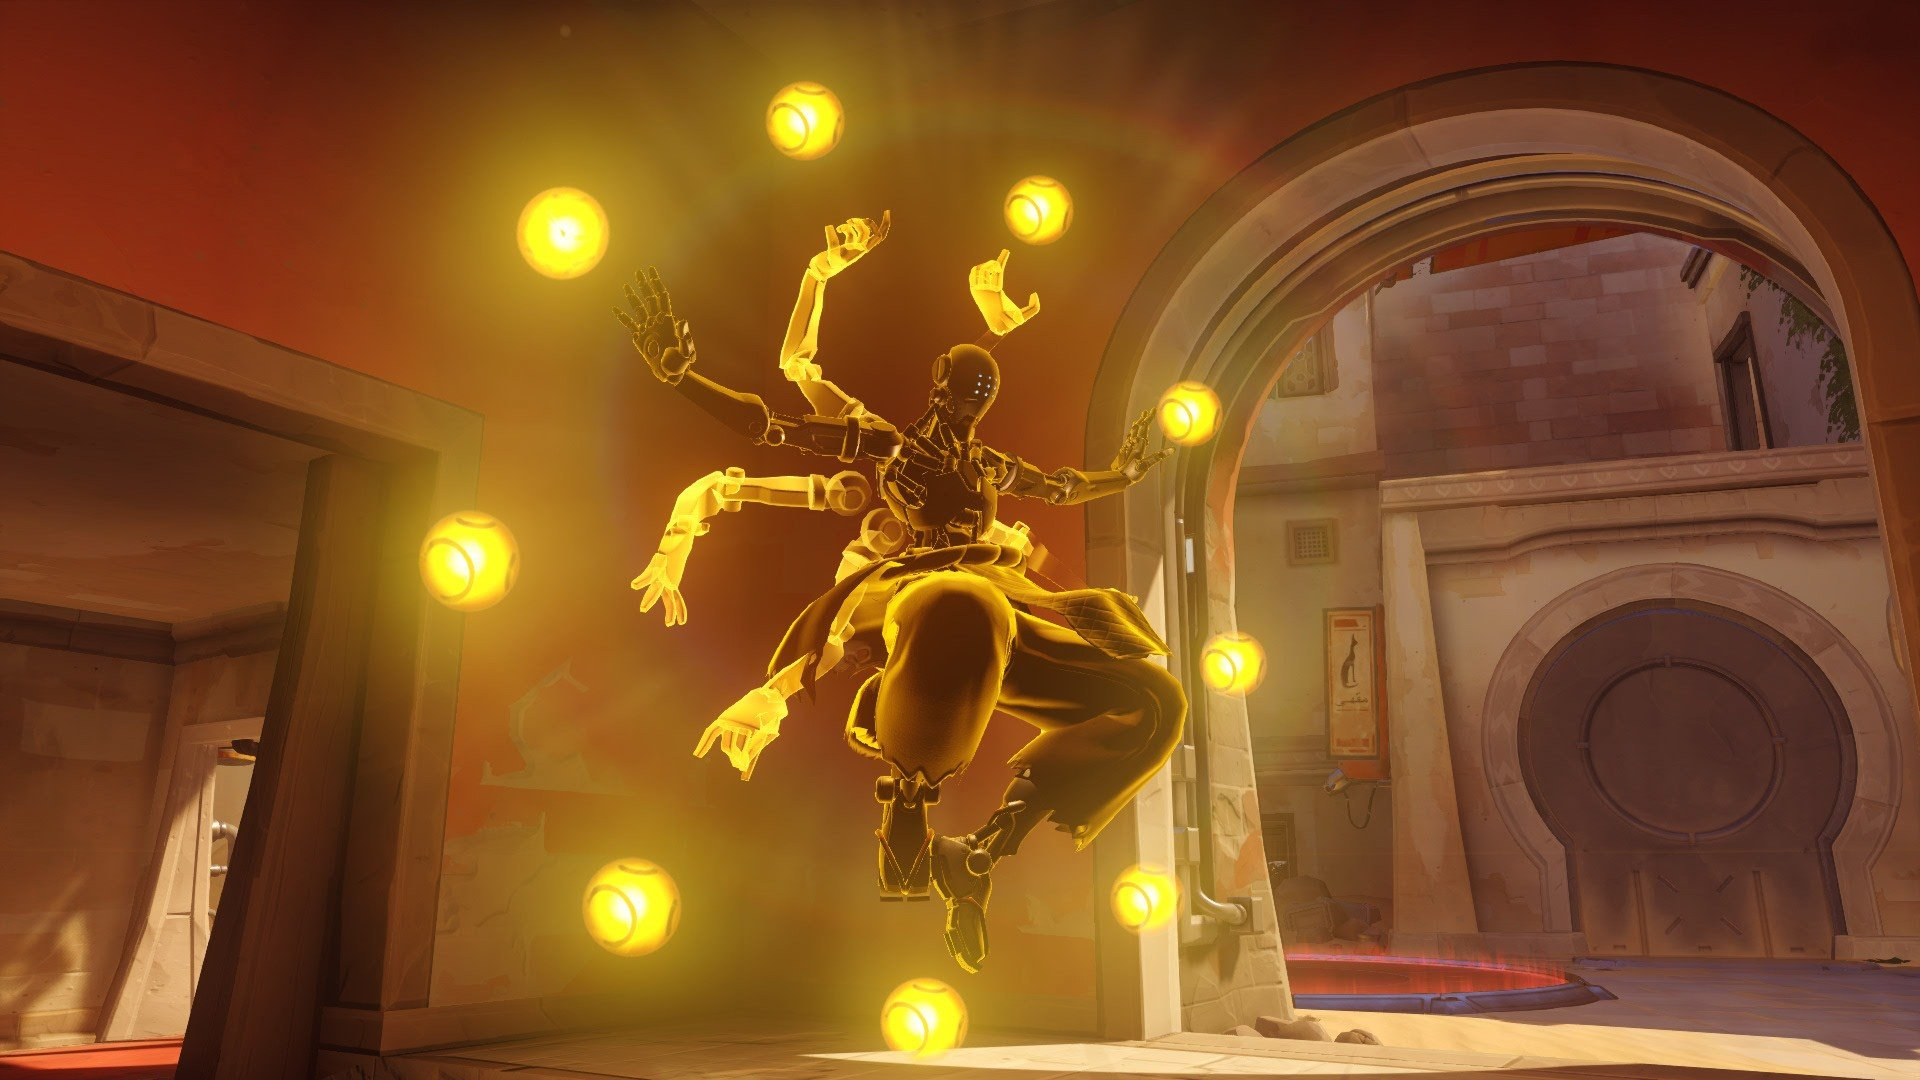 Into The Wild Quotes Wallpaper Overwatch S Zenyatta May Be The Next Character To See Buffs